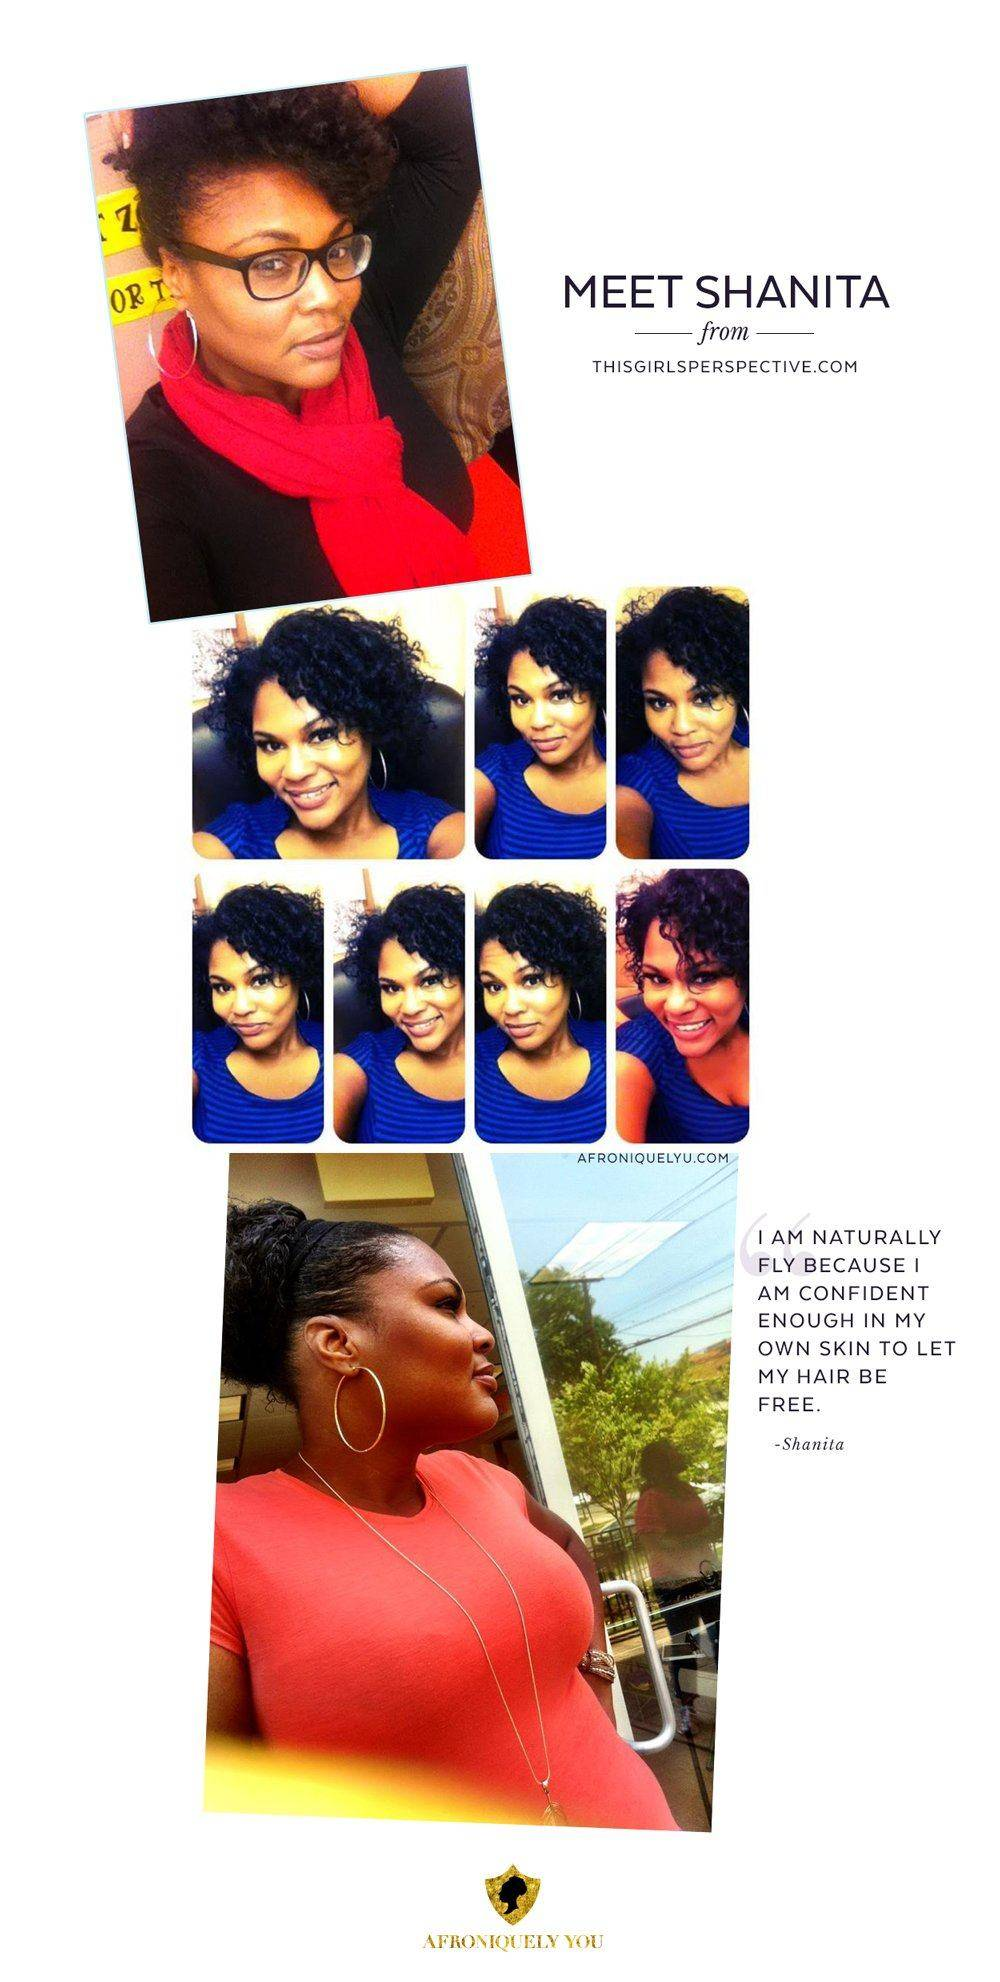 Shanita is a Fly Natural, featured on Afroniquely You